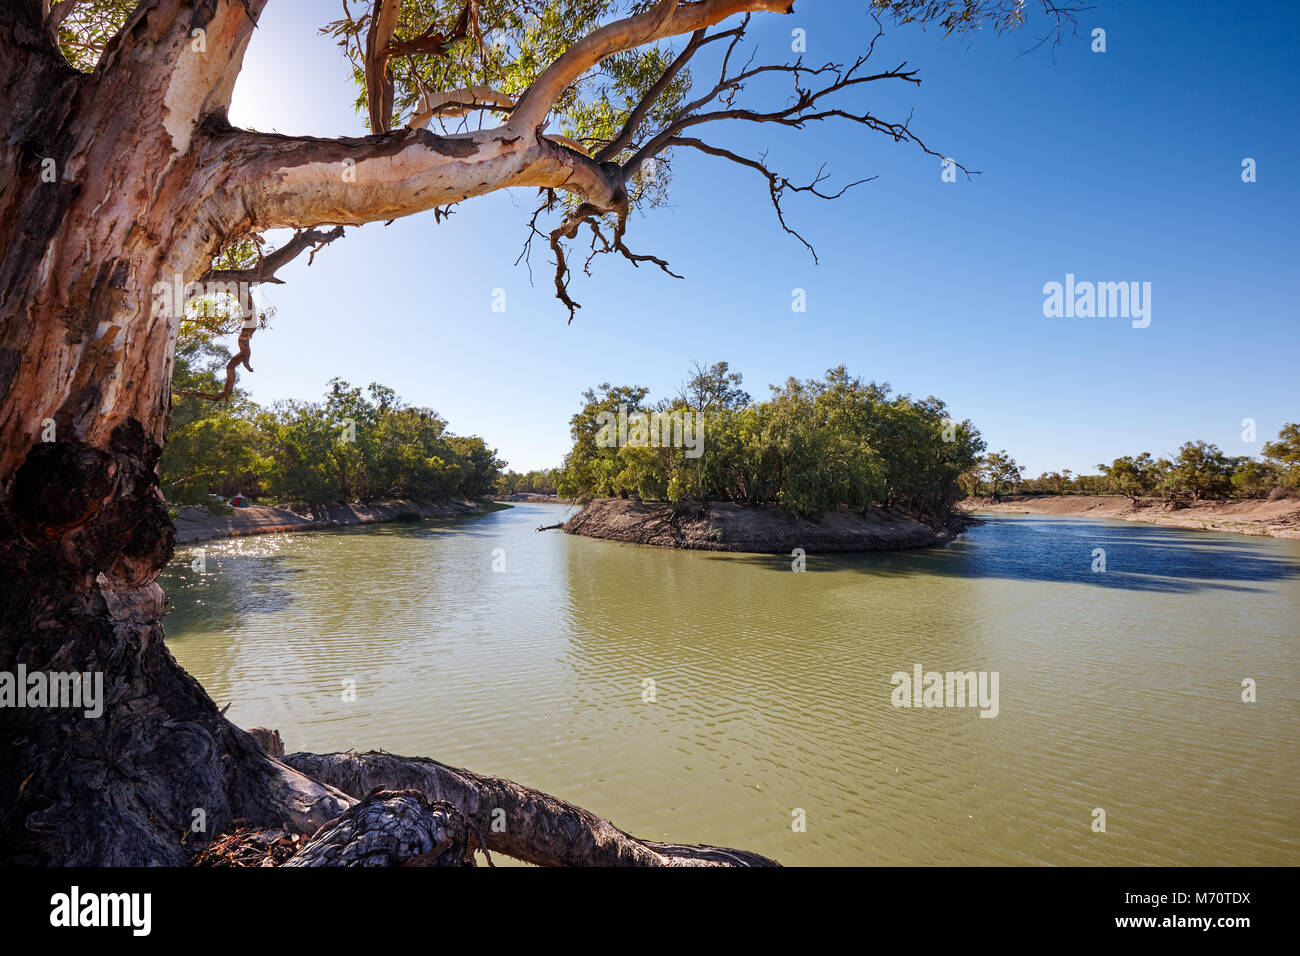 Early morning, Darling River near small outback town of Menindee, Nerw South Wales, Australia - Stock Image